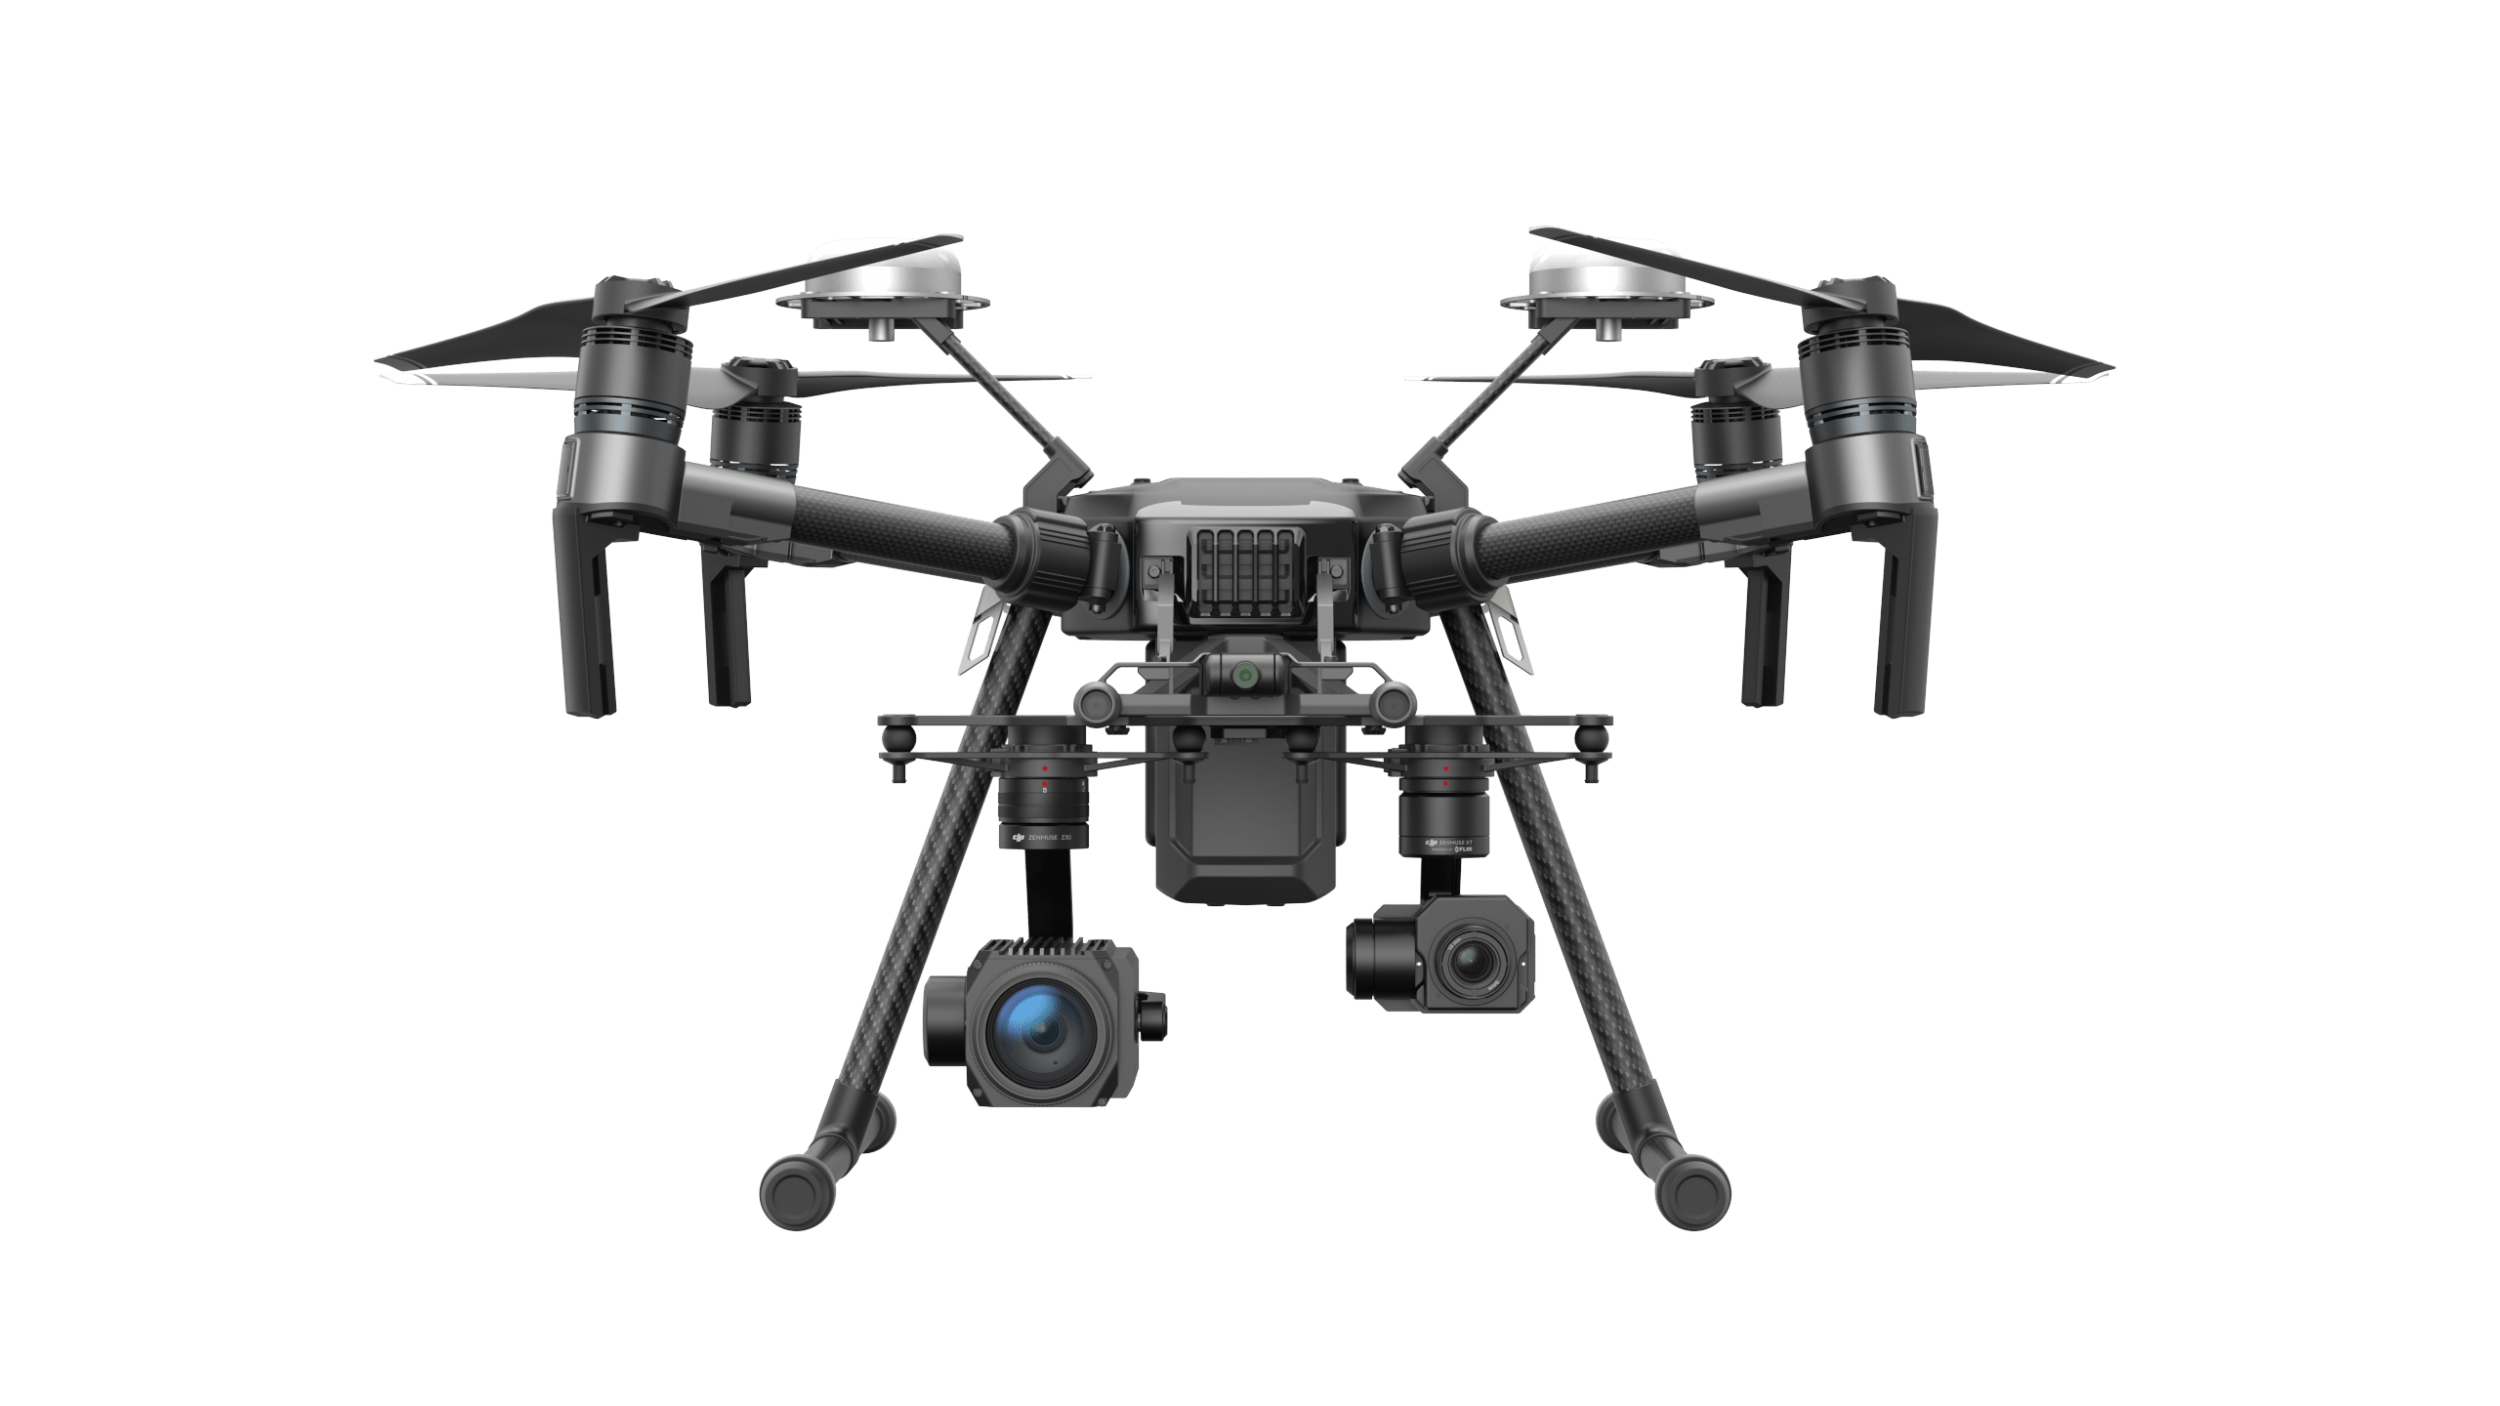 Market Leader Dji Unveils New Quadcopter For Industrial